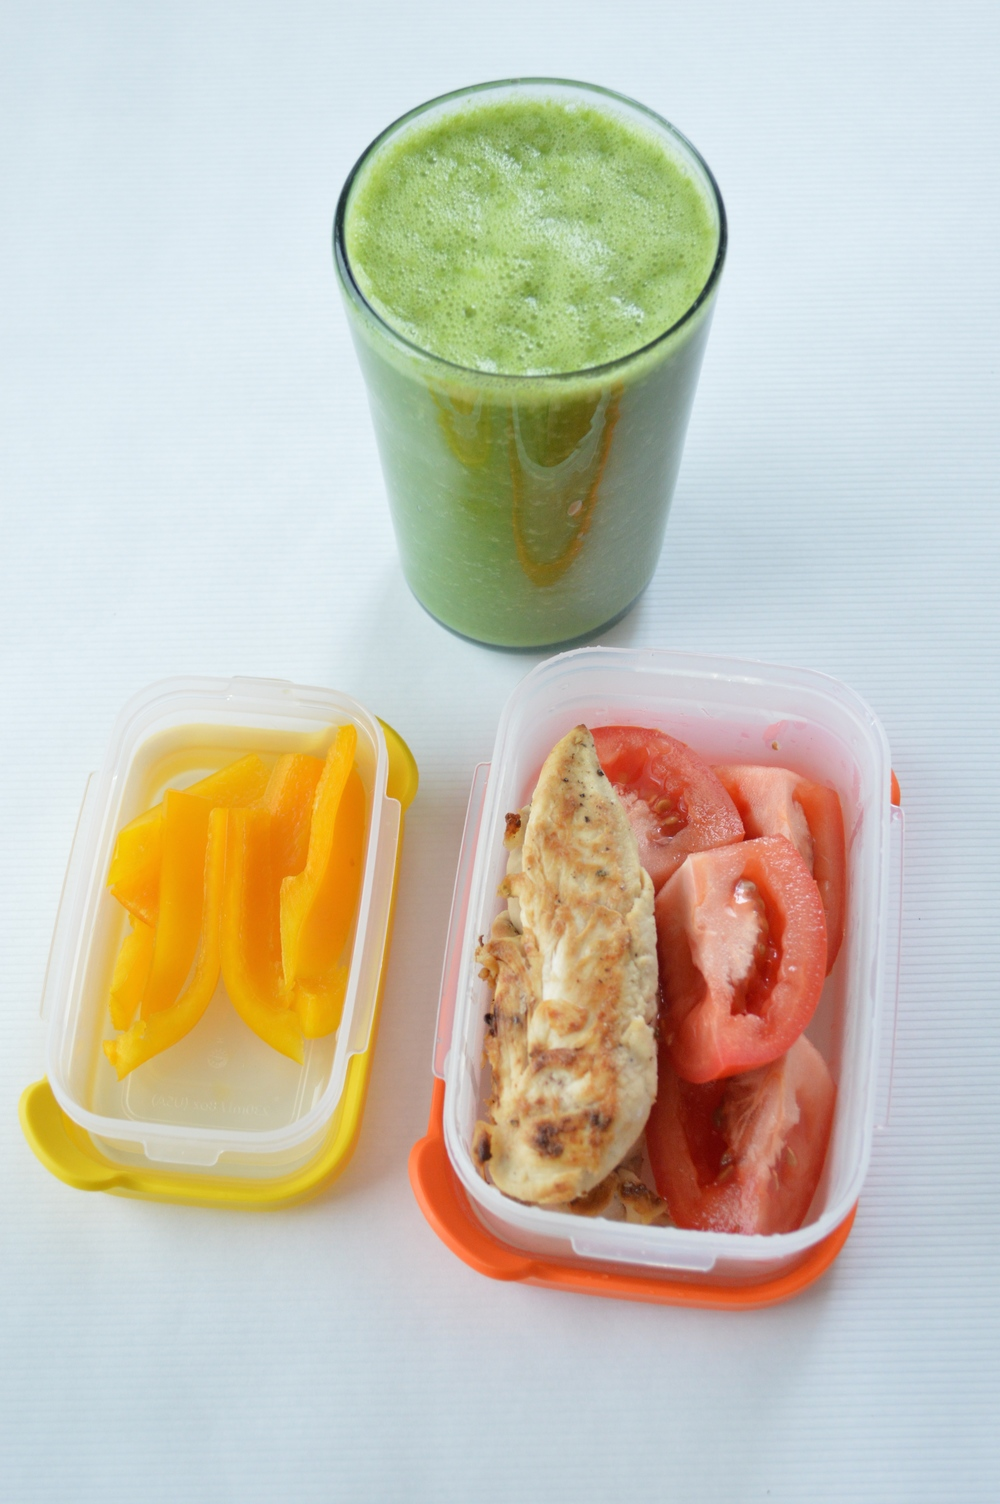 Green Smoothie To-Go | Yellow Bell Pepper | Pan Baked Chicken Tenders + Tomato